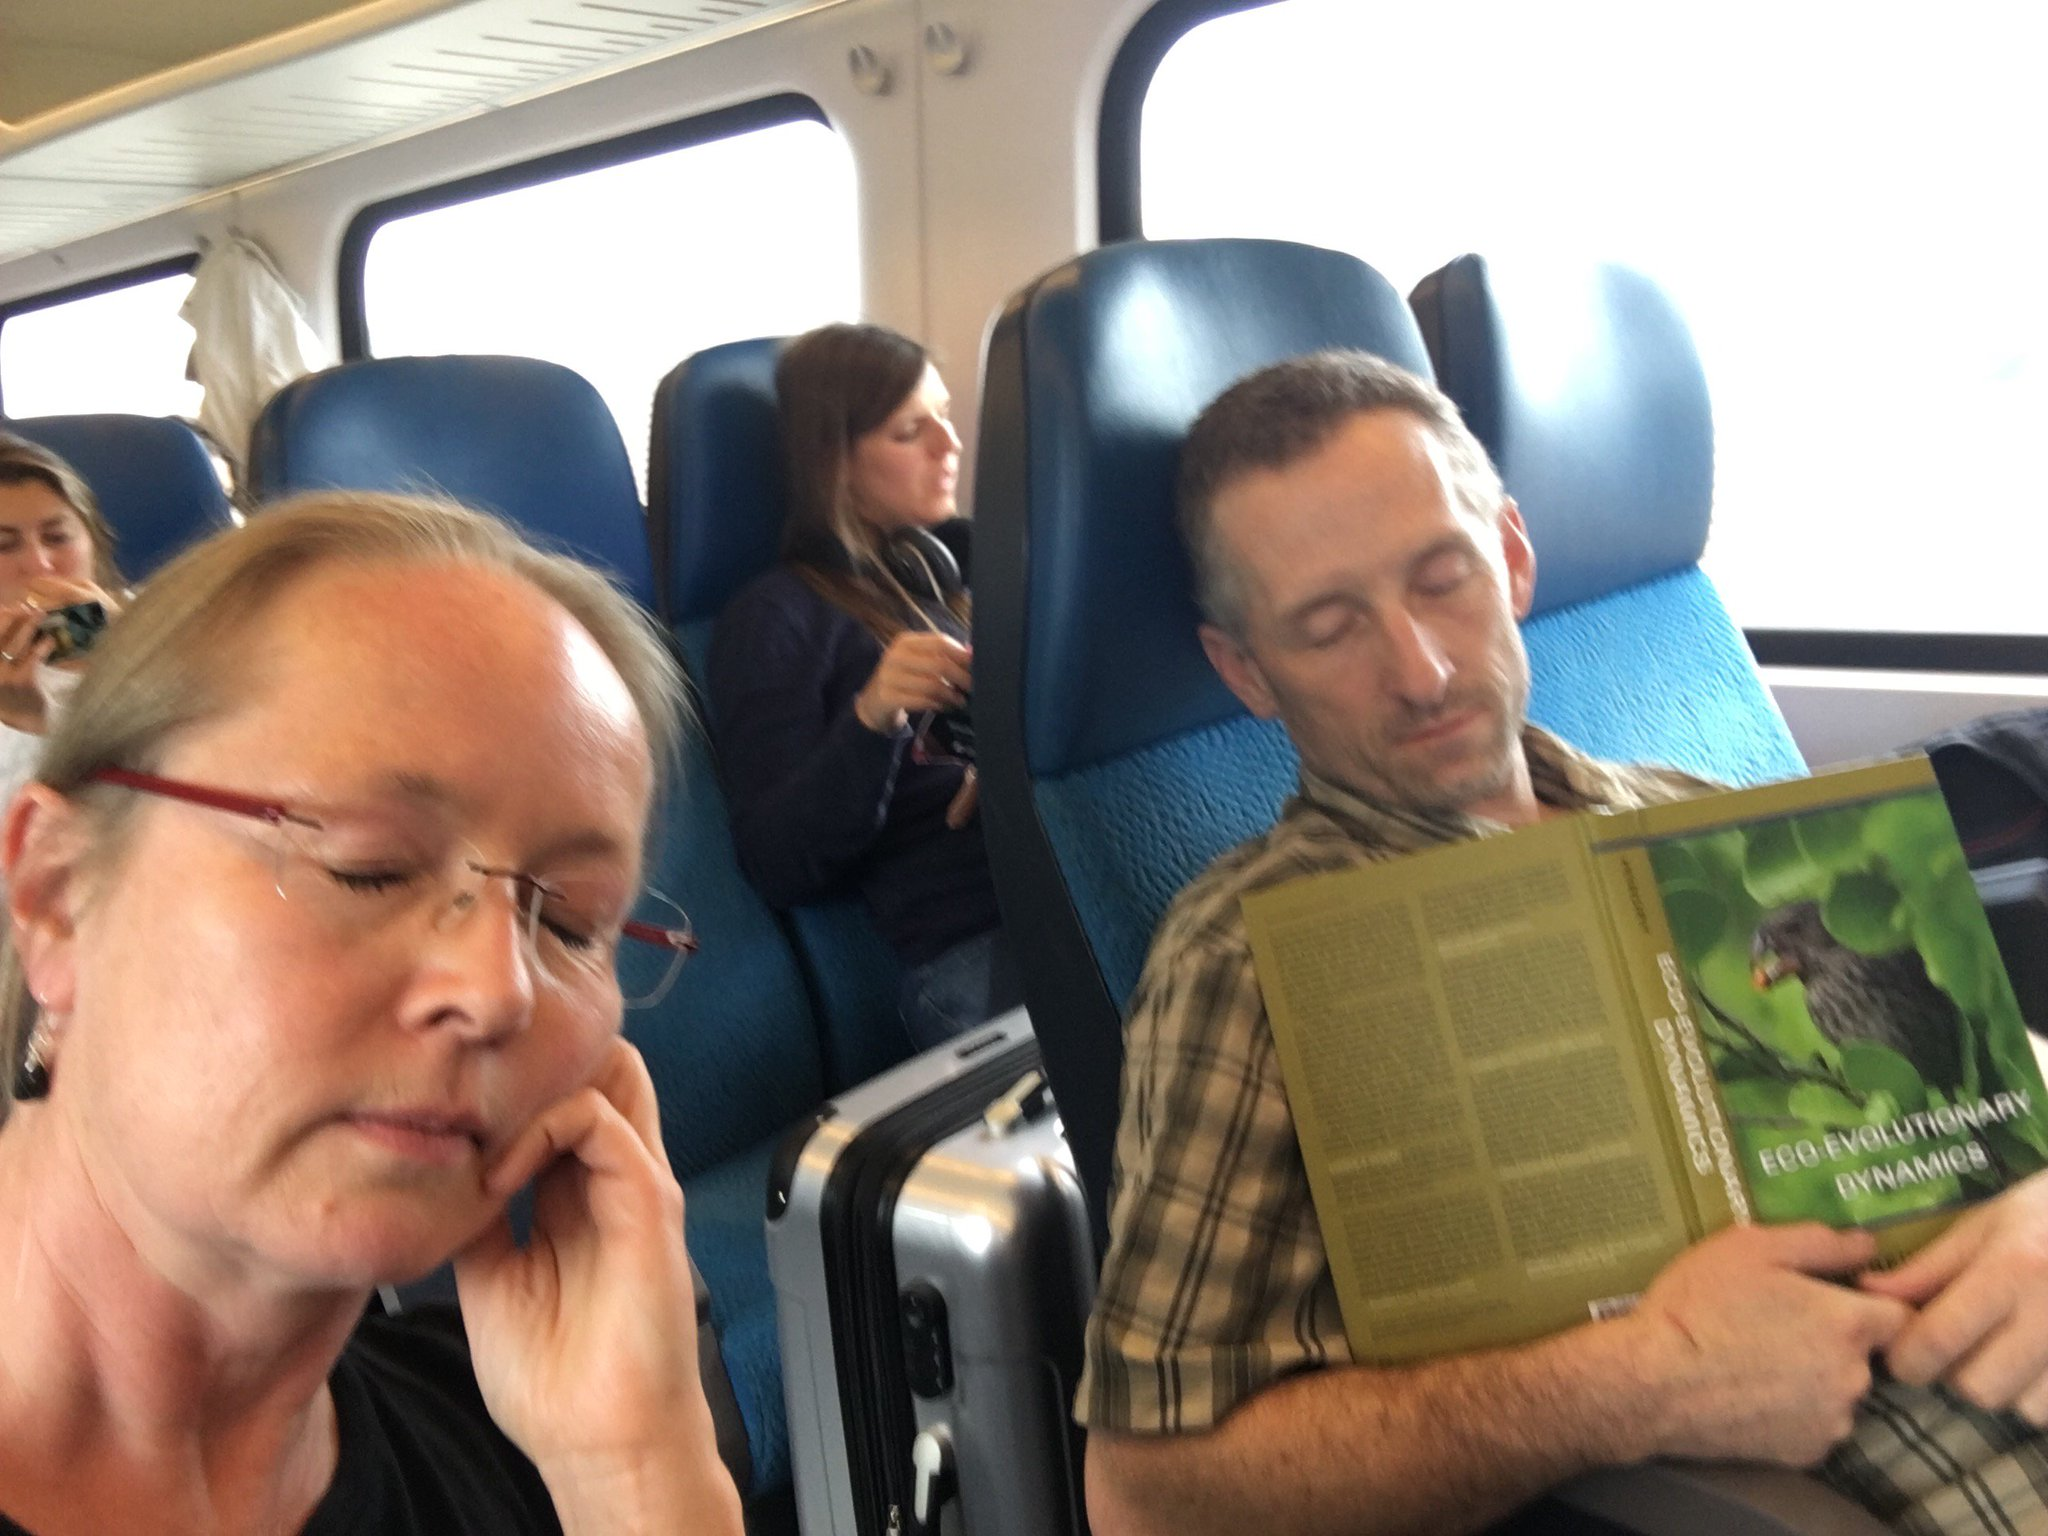 Sharing a  #PeopleWhoFellAsleepReadingMyBook Moment with @EcoEvoEvoEco en route to @Eseb_2017 https://t.co/42ezfmqZpL